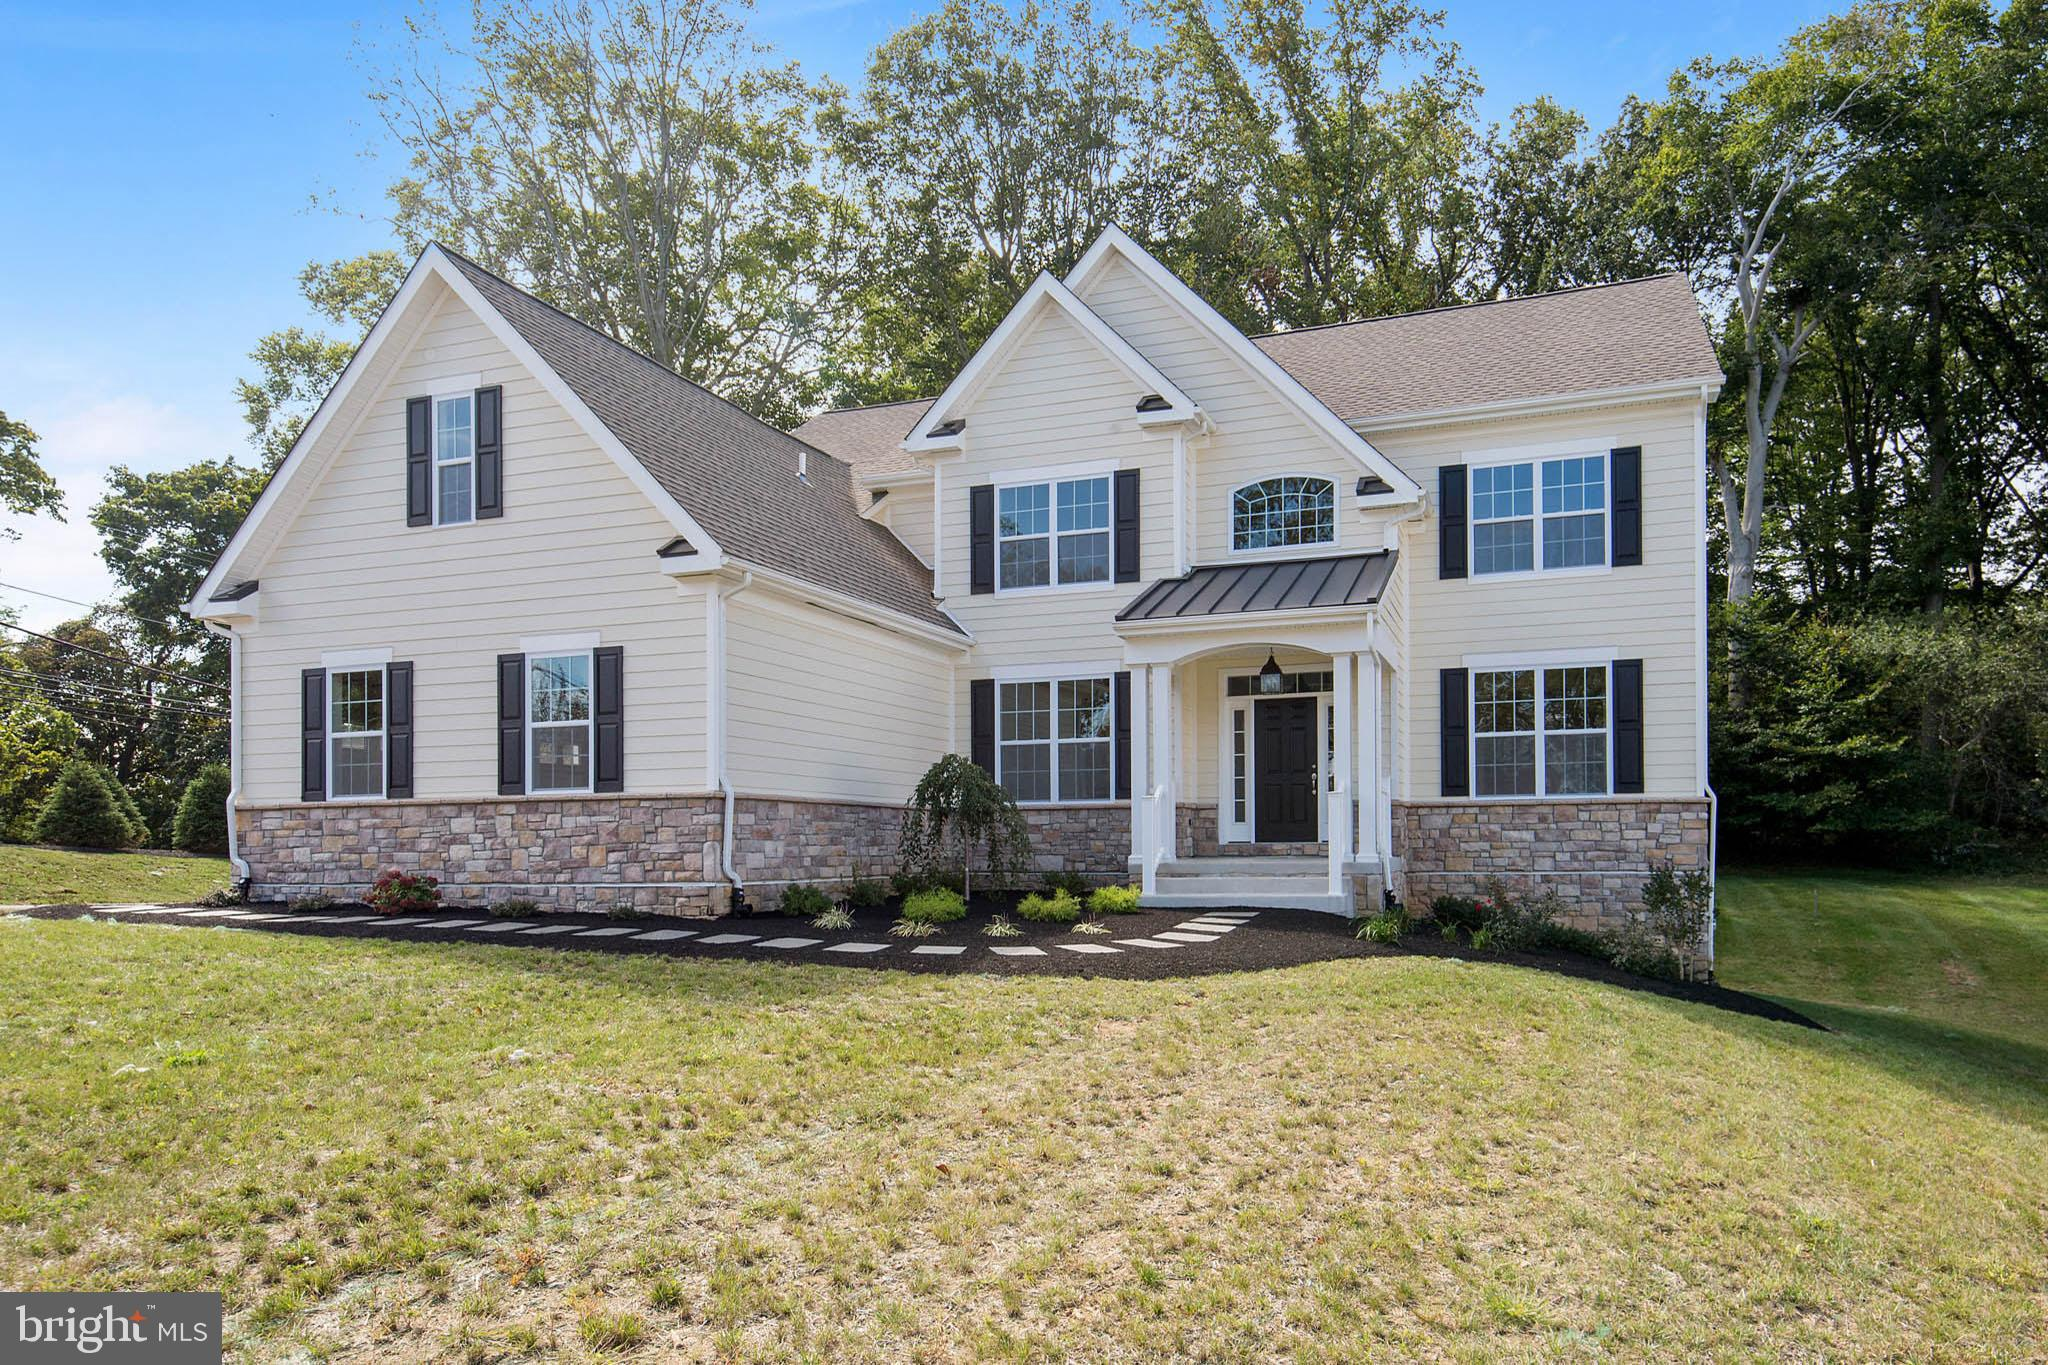 Third Generation Builders proudly offers the Birmingham Model 1541 Tattersall Way in West Chester!  This premium homesite offers stunning golf course views in West Bradford Township's Tattersall Community is a rare opportunity to build a customized home in an established desirable neighborhood.  You won't be bothered with the inconveniences that go along with new development construction here!  Finally, new construction is available on a large lot with public utilities in West Chester!  Choose from 3  brilliantly designed floor plans, each featuring open concept living and size in the rooms where you want it most!  All models come with a generous included features package including hardie board siding enhanced by stone water table, 30 year dimensional roof shingles, 9 foot ceiling height on all 3 levels, extensive hardwood flooring, oak stairs, 42 inch cabinets, soft close doors and drawers, granite counters, oversized island, handsome trim detail and cozy family room fireplace!  Need more space?  Exciting structural options are available including in law suite, 5th bedroom, secondary bedroom en suite, 10 foot ceiling, finished basement, deck, patio and much much more!  Need more value?  You will love the energy efficient and smart home features including R-38 ceiling and R-18 sidewall insulation, water saving plumbing, quick recovery water heater, high efficiency forced hot air, 13 SEER central air conditioning, programmable thermostats, low E vinyl windows and insulated exterior doors.  Looking for community amenities?  Broad Run's clubhouse, Bordley House Grille and the first tee is literally a short enjoyable walk down the hill!  You will thoroughly enjoy the neighborhood location.  In just a short drive you can be in vibrant West Chester or Downingtown Boroughs and even closer is the quaint village of Marshalltown!  Third Generation Builders employ a hands on approach with personal attention to detail and adherence to the highest standards.  Bring your dreams a